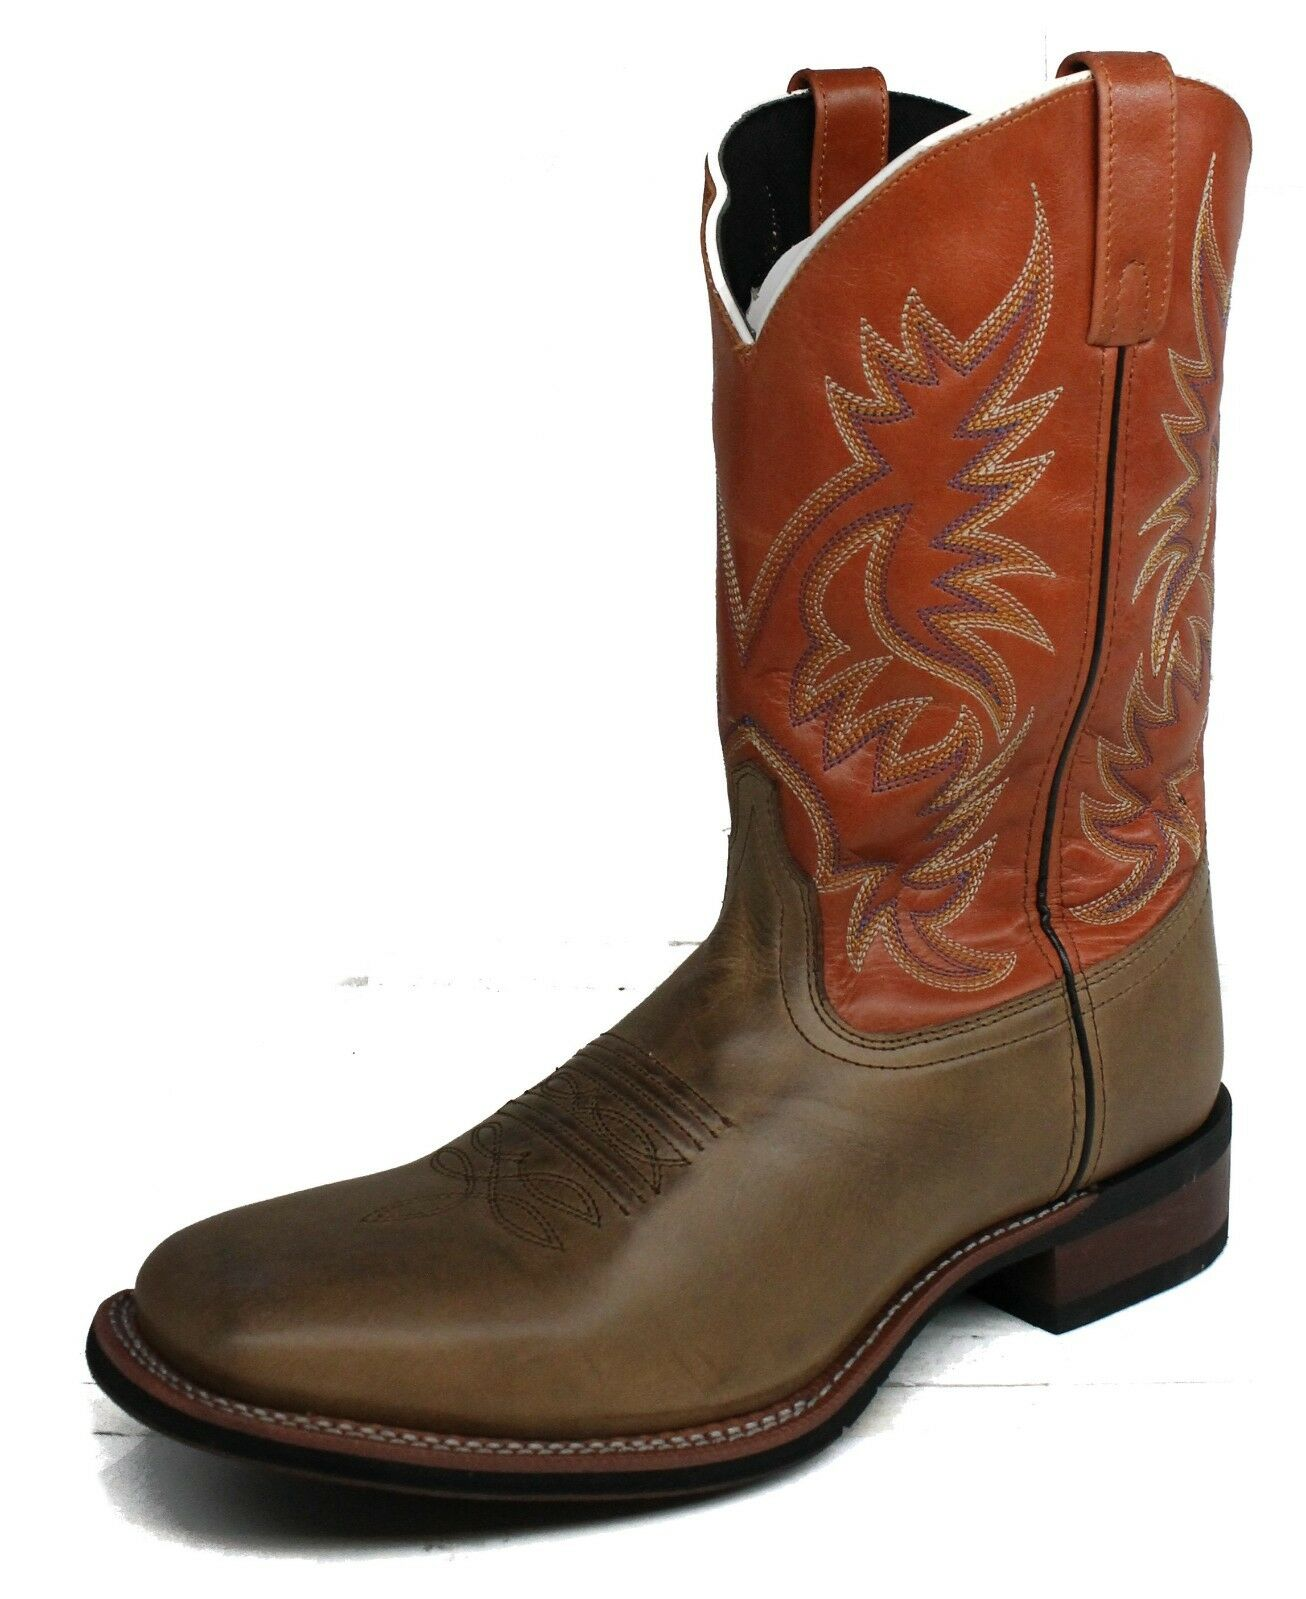 Mens Laredo® 11 Tan orange BS Western Cowboy Leather Work Boots  Size 10 D